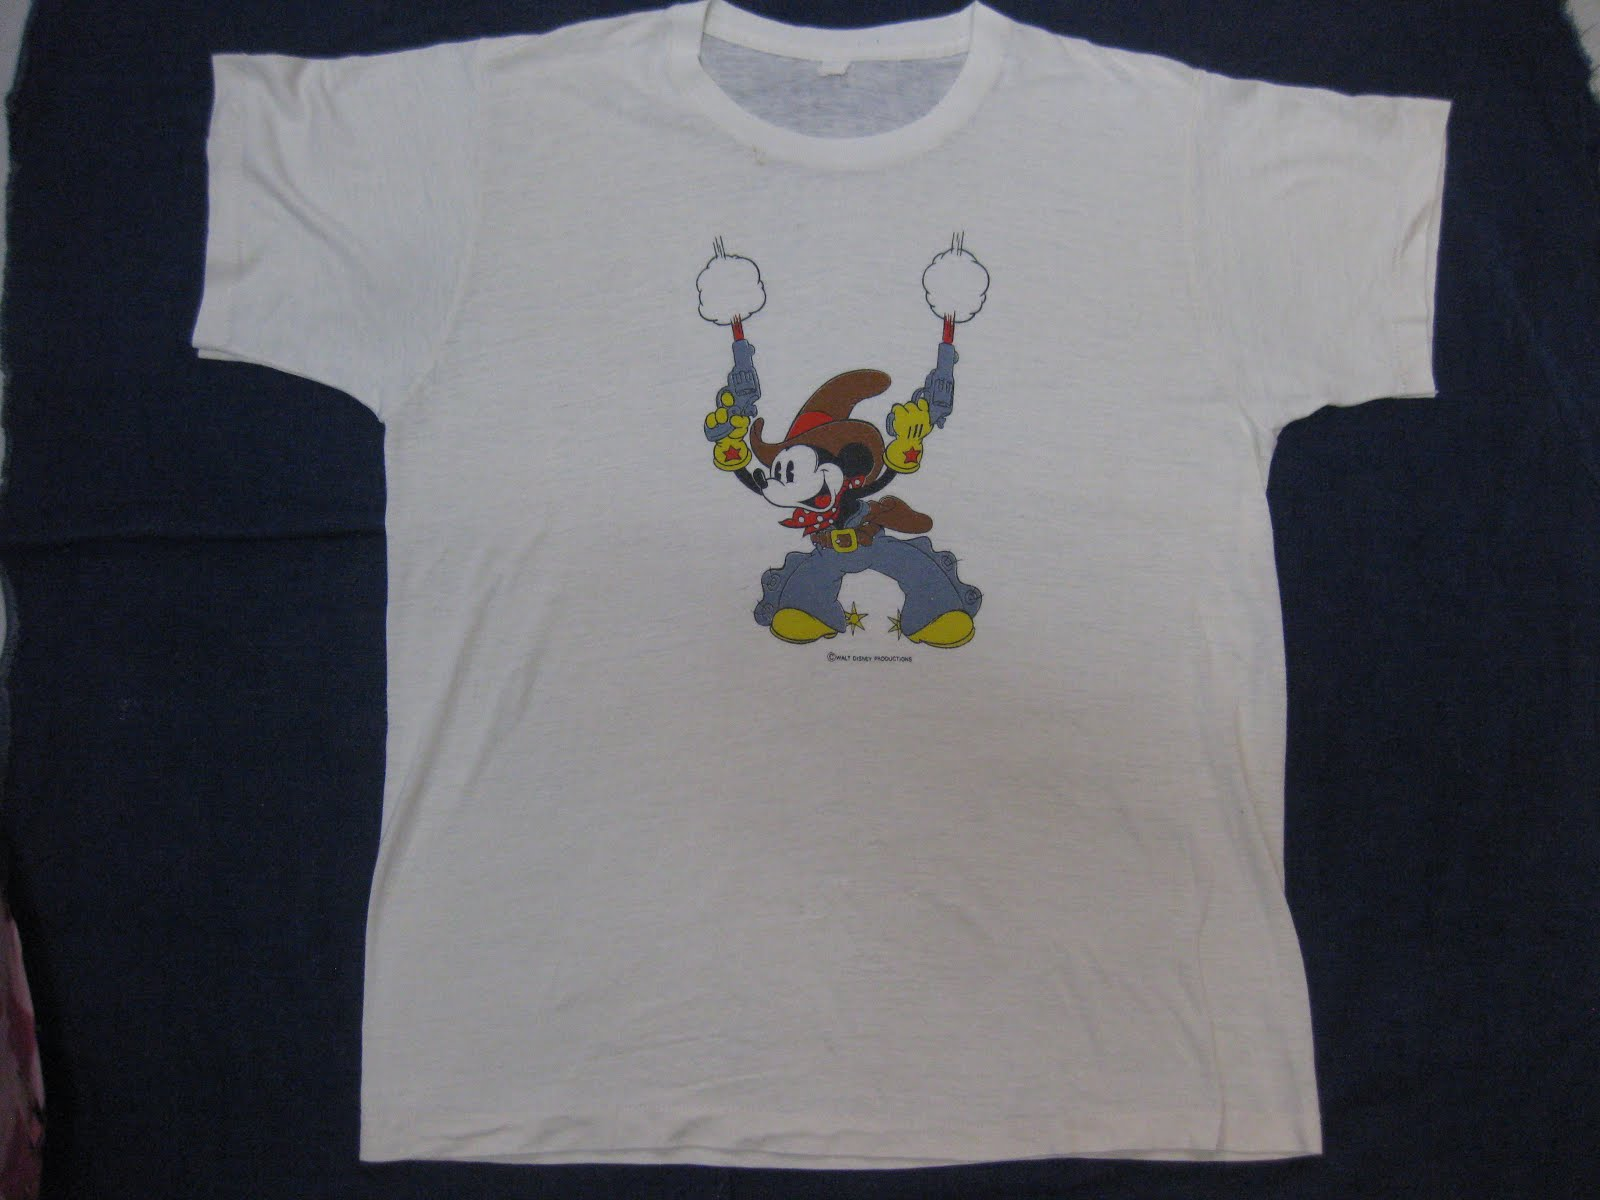 70's MICKY MOUSE            「DOUBLE GUN」           PRINTED Tee SHIRTS